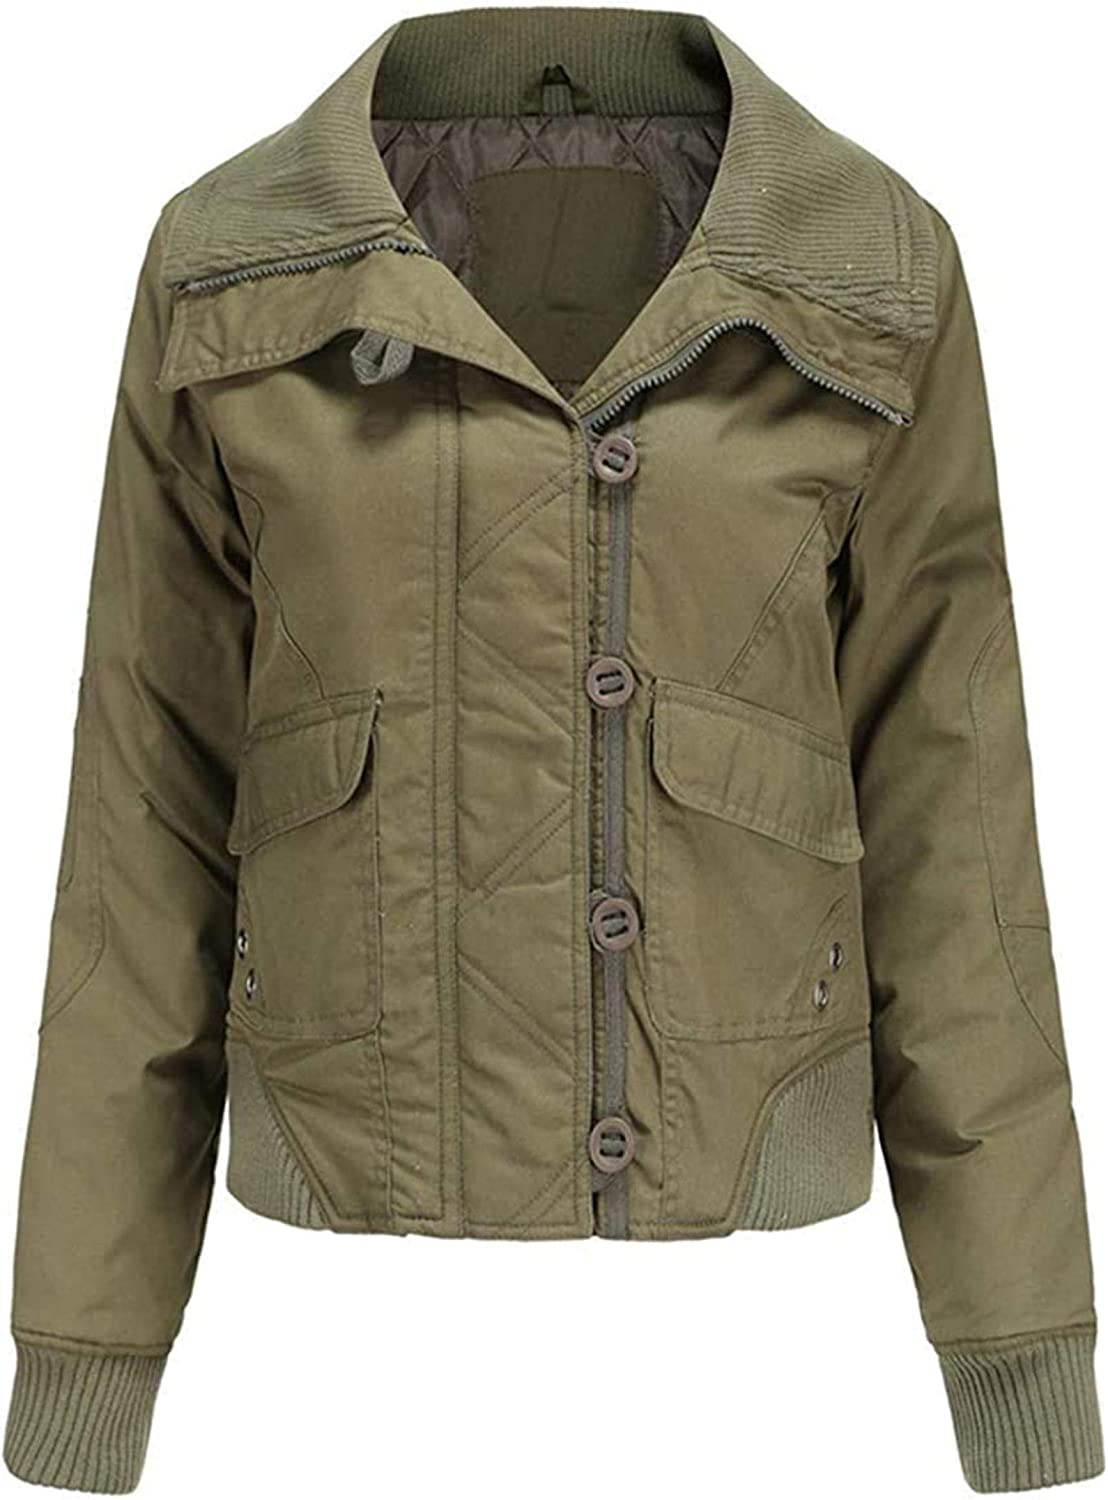 Women's Fall Winter Large Rib Knit Collar Cool Quilted Bomber Jacket